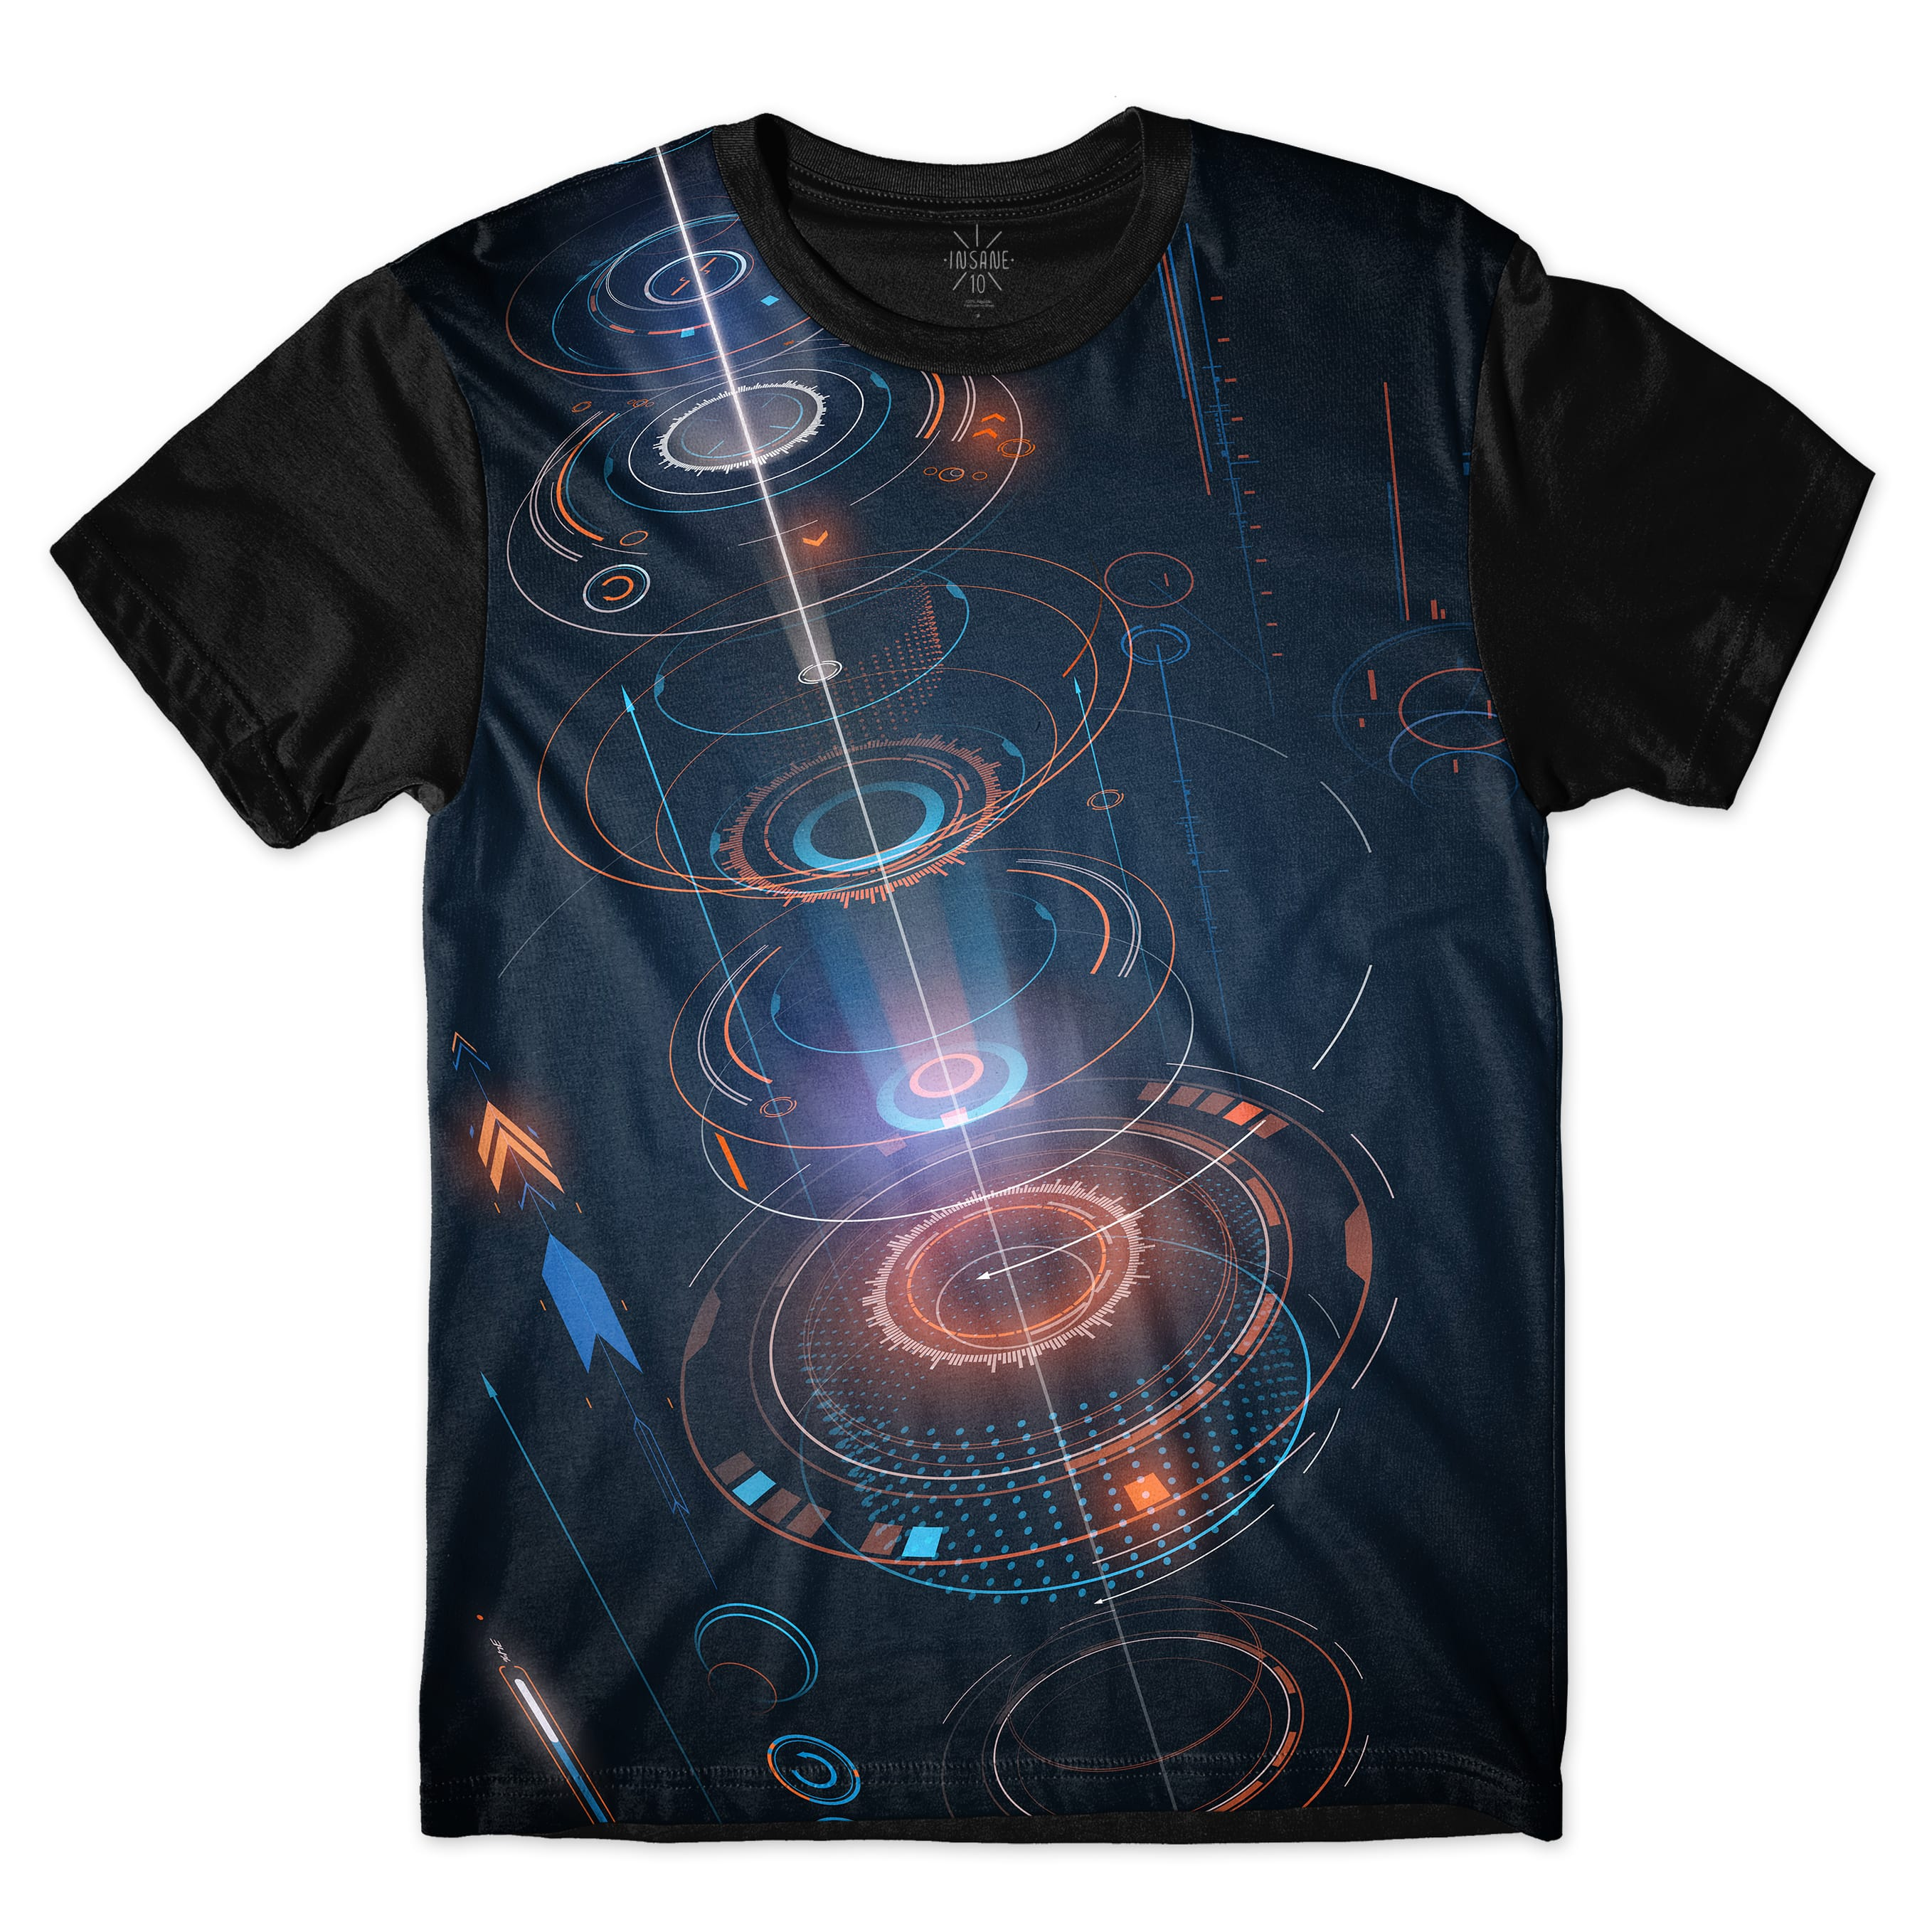 Camiseta Insane 10 Tecnologia Abstrata Interface Circulos Full Print Azul